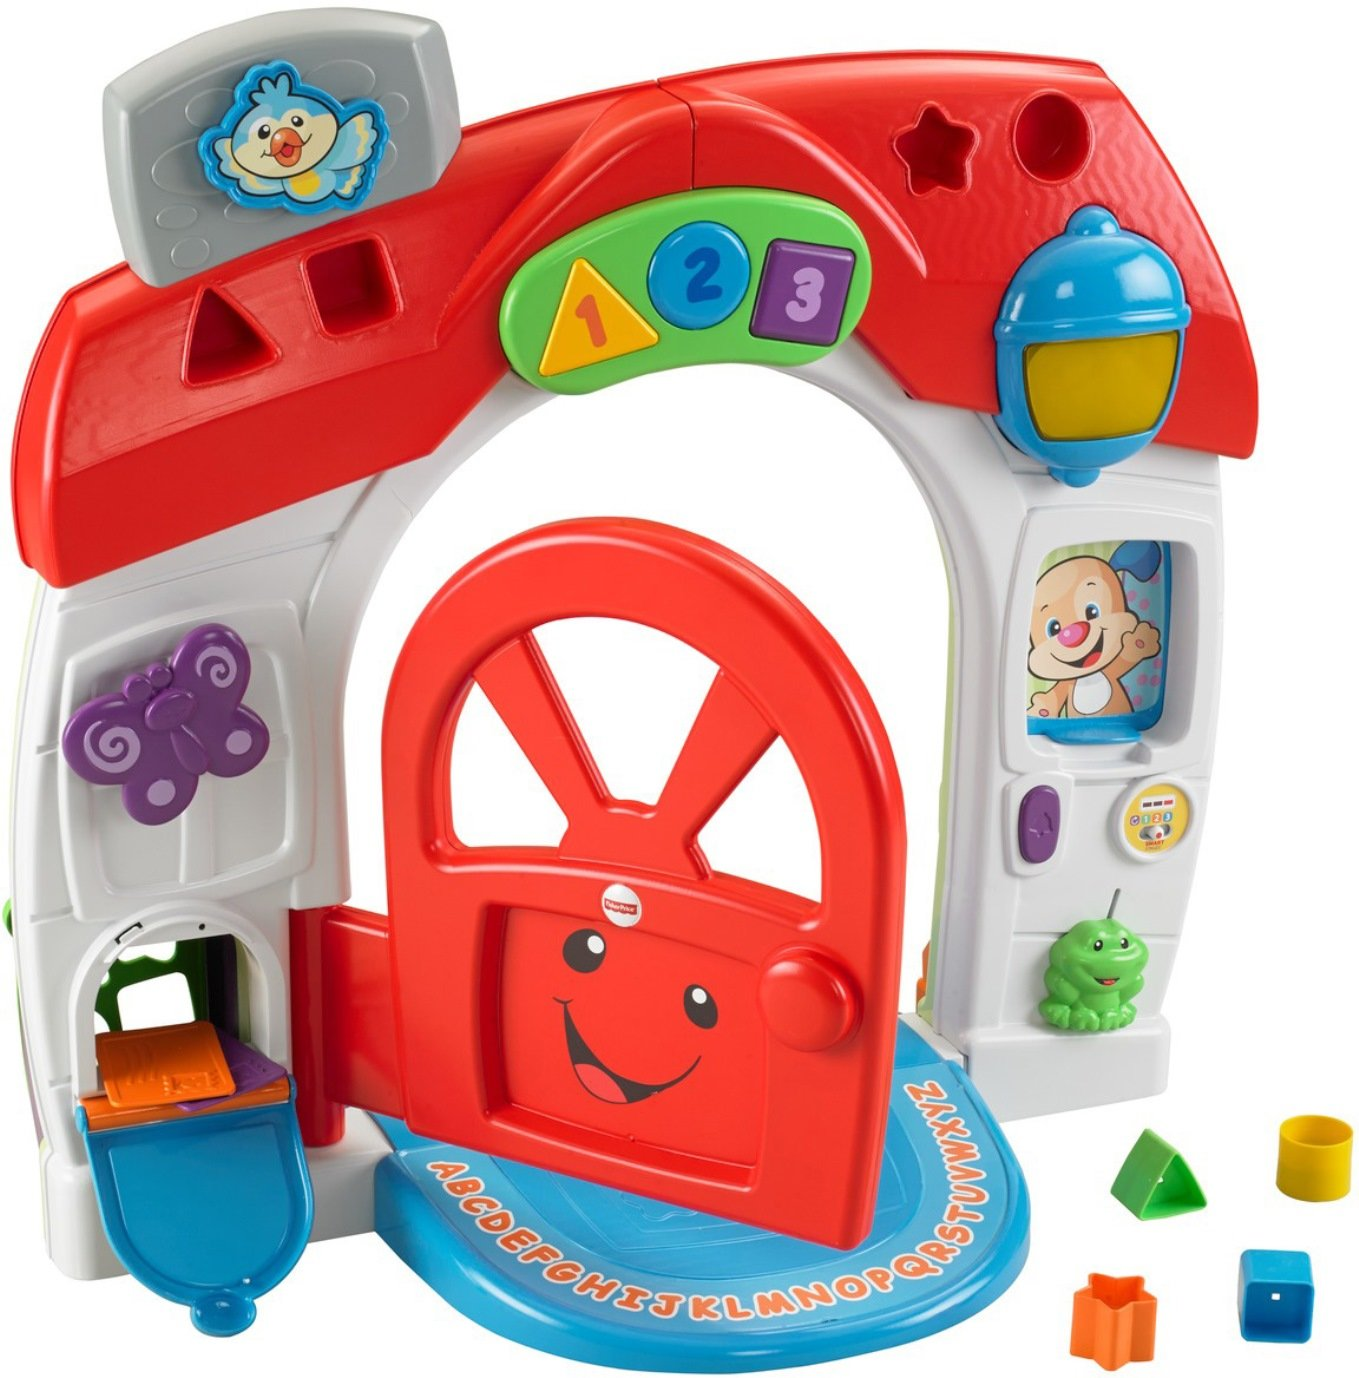 Fisher-Price Laugh & Learn Puppy Smart Home Mattel BFK48